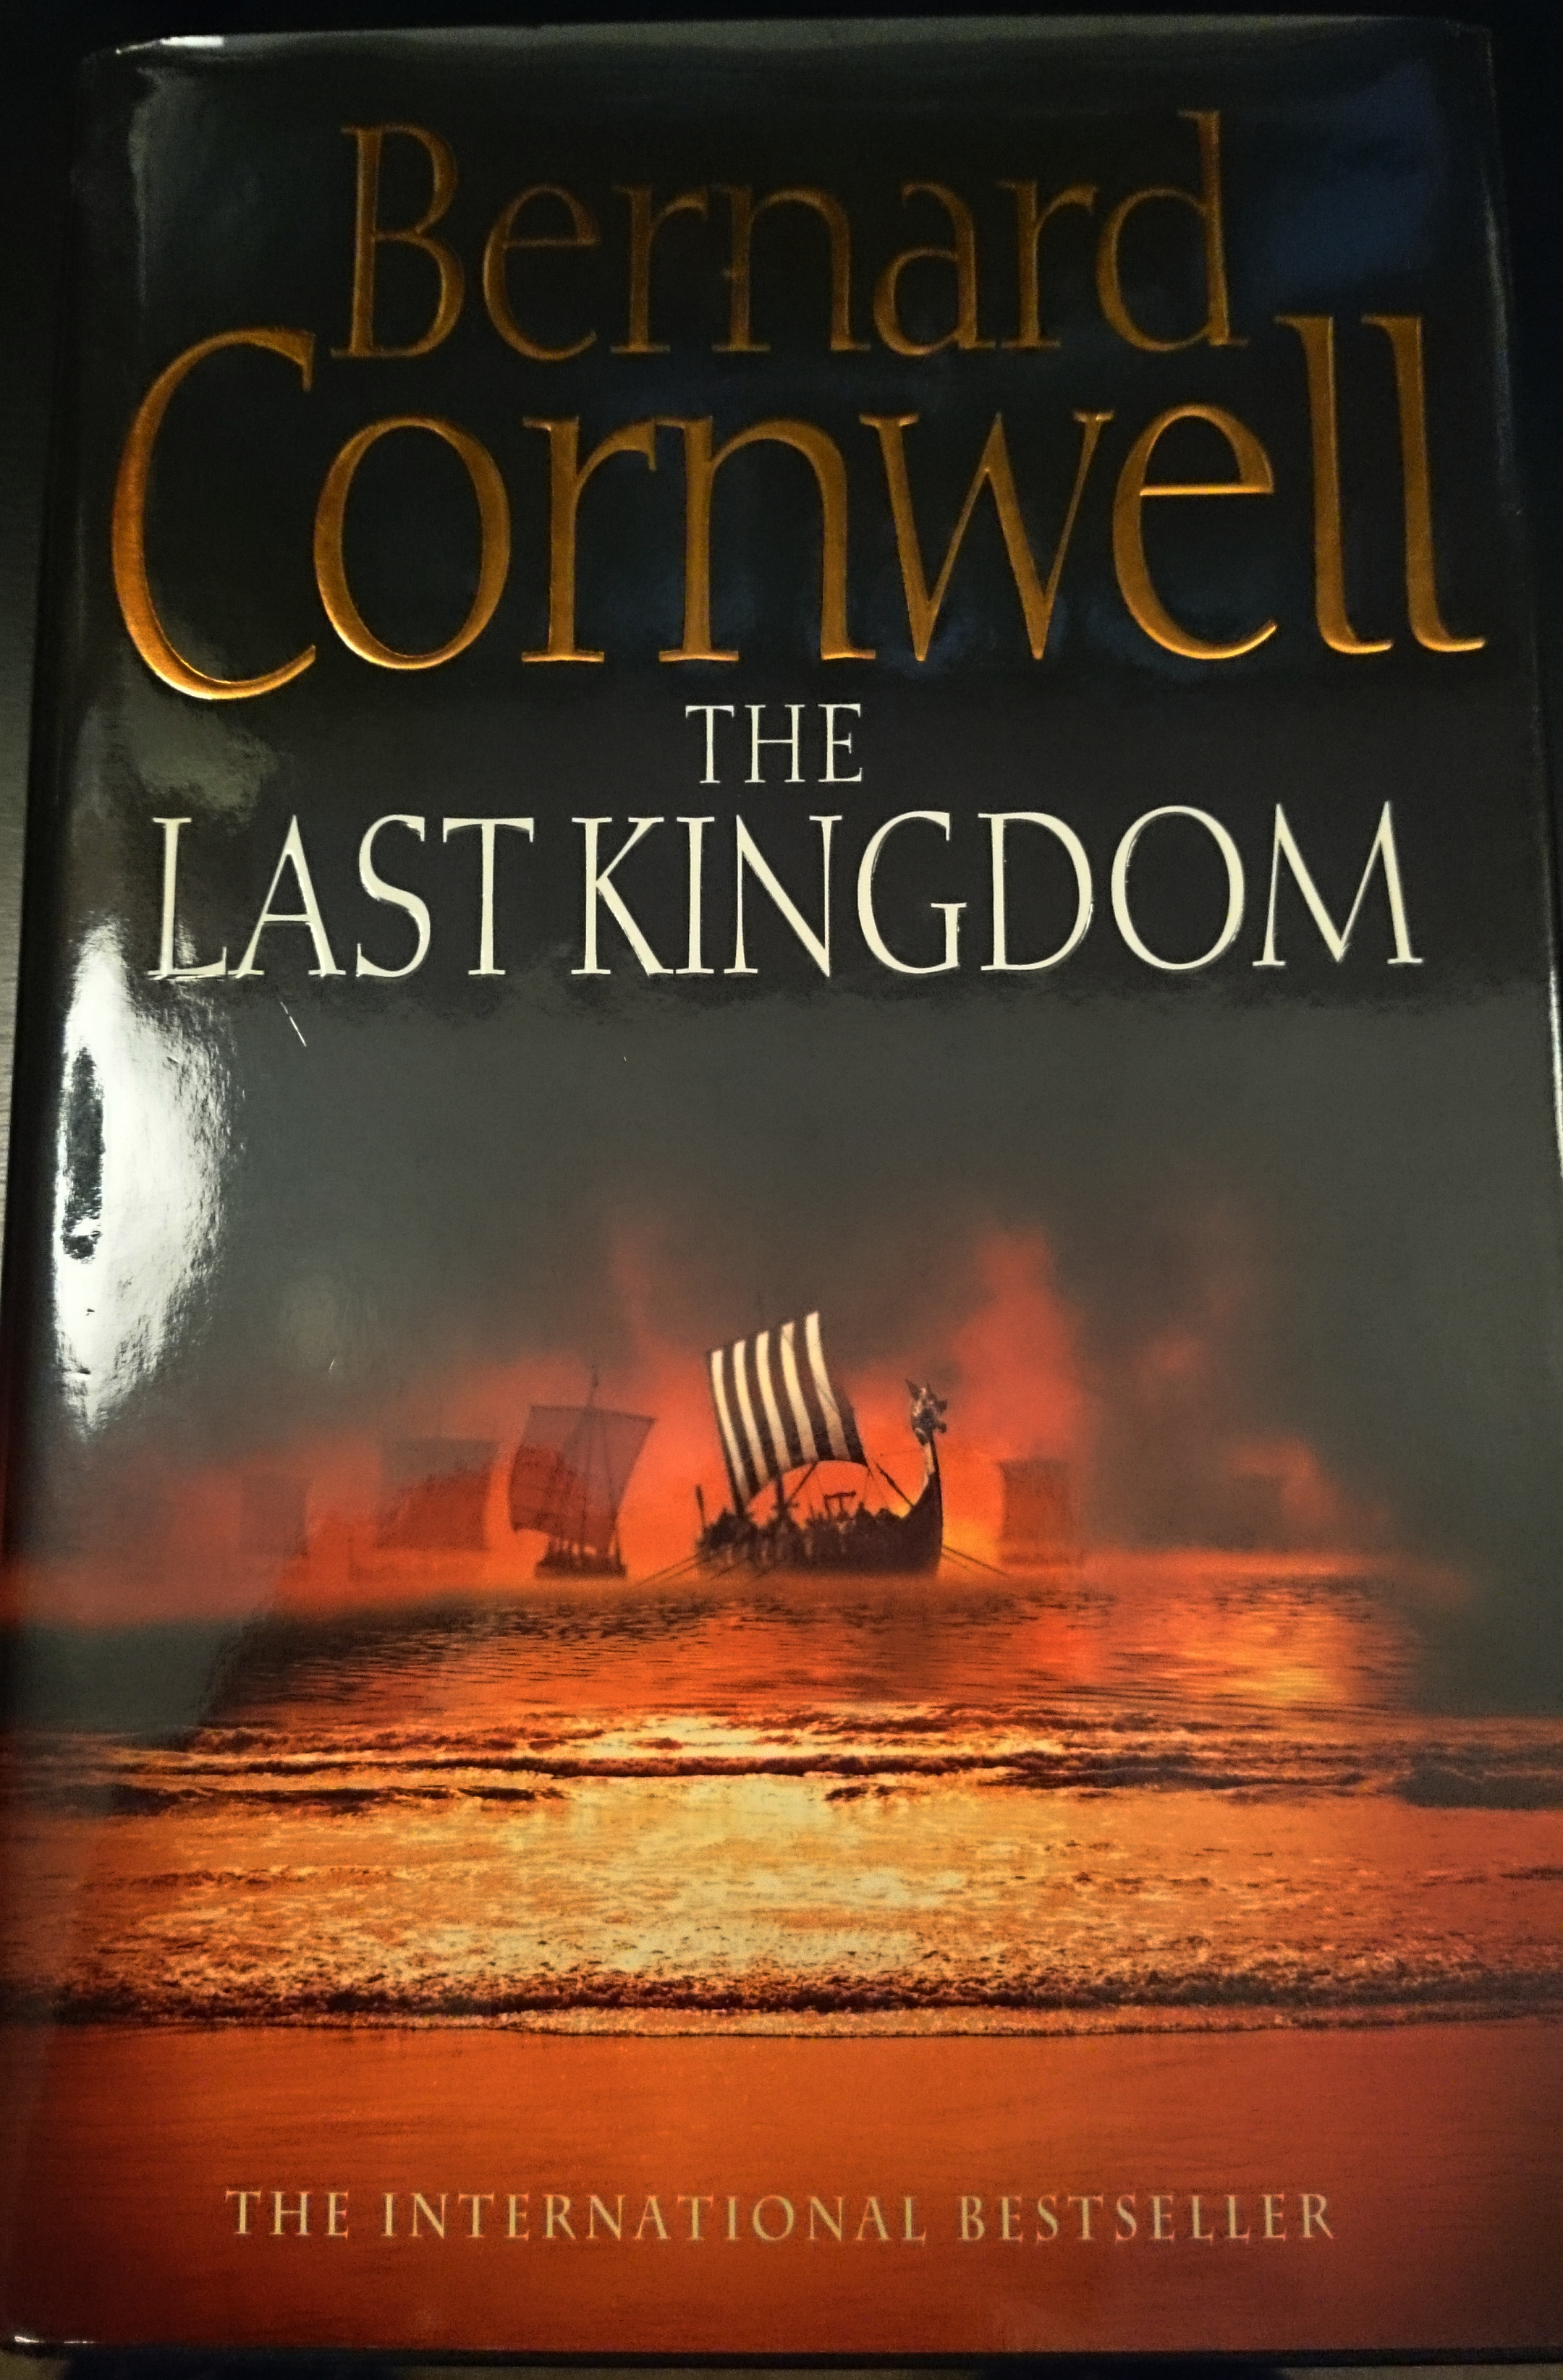 The BBC's latest adaptation, Bernard Cornwell's The Last Kingdom